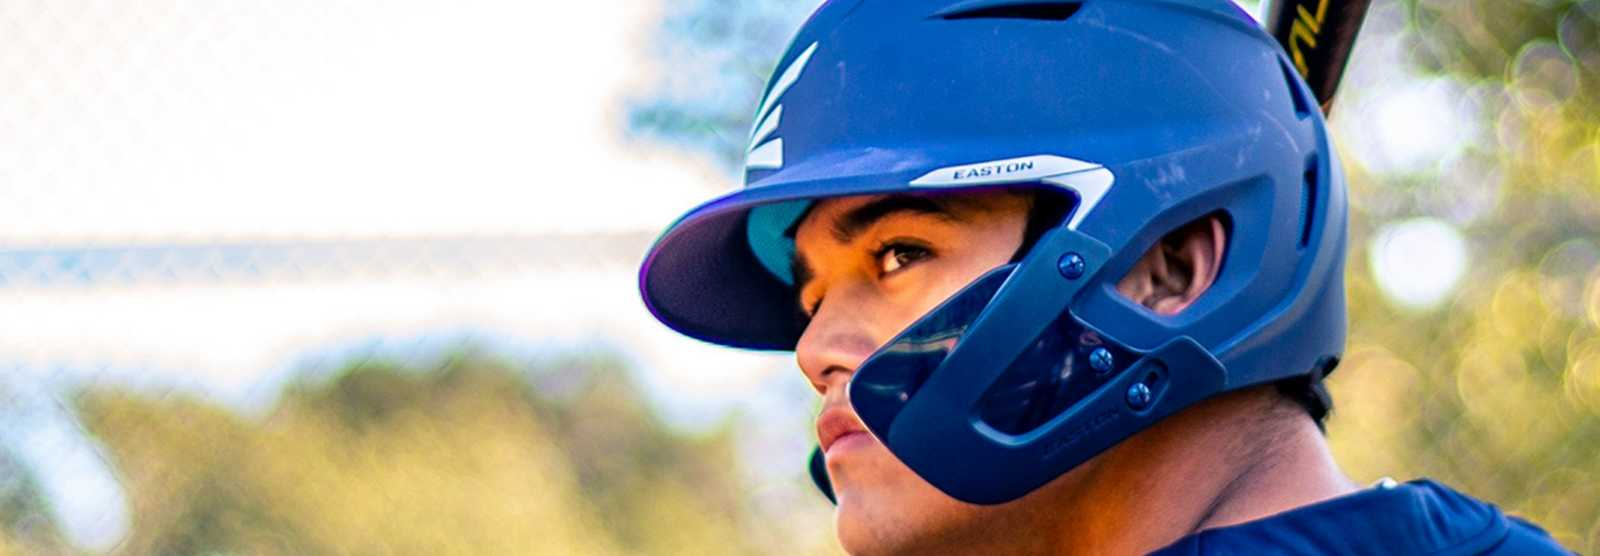 jaw-guard-batting-helmet